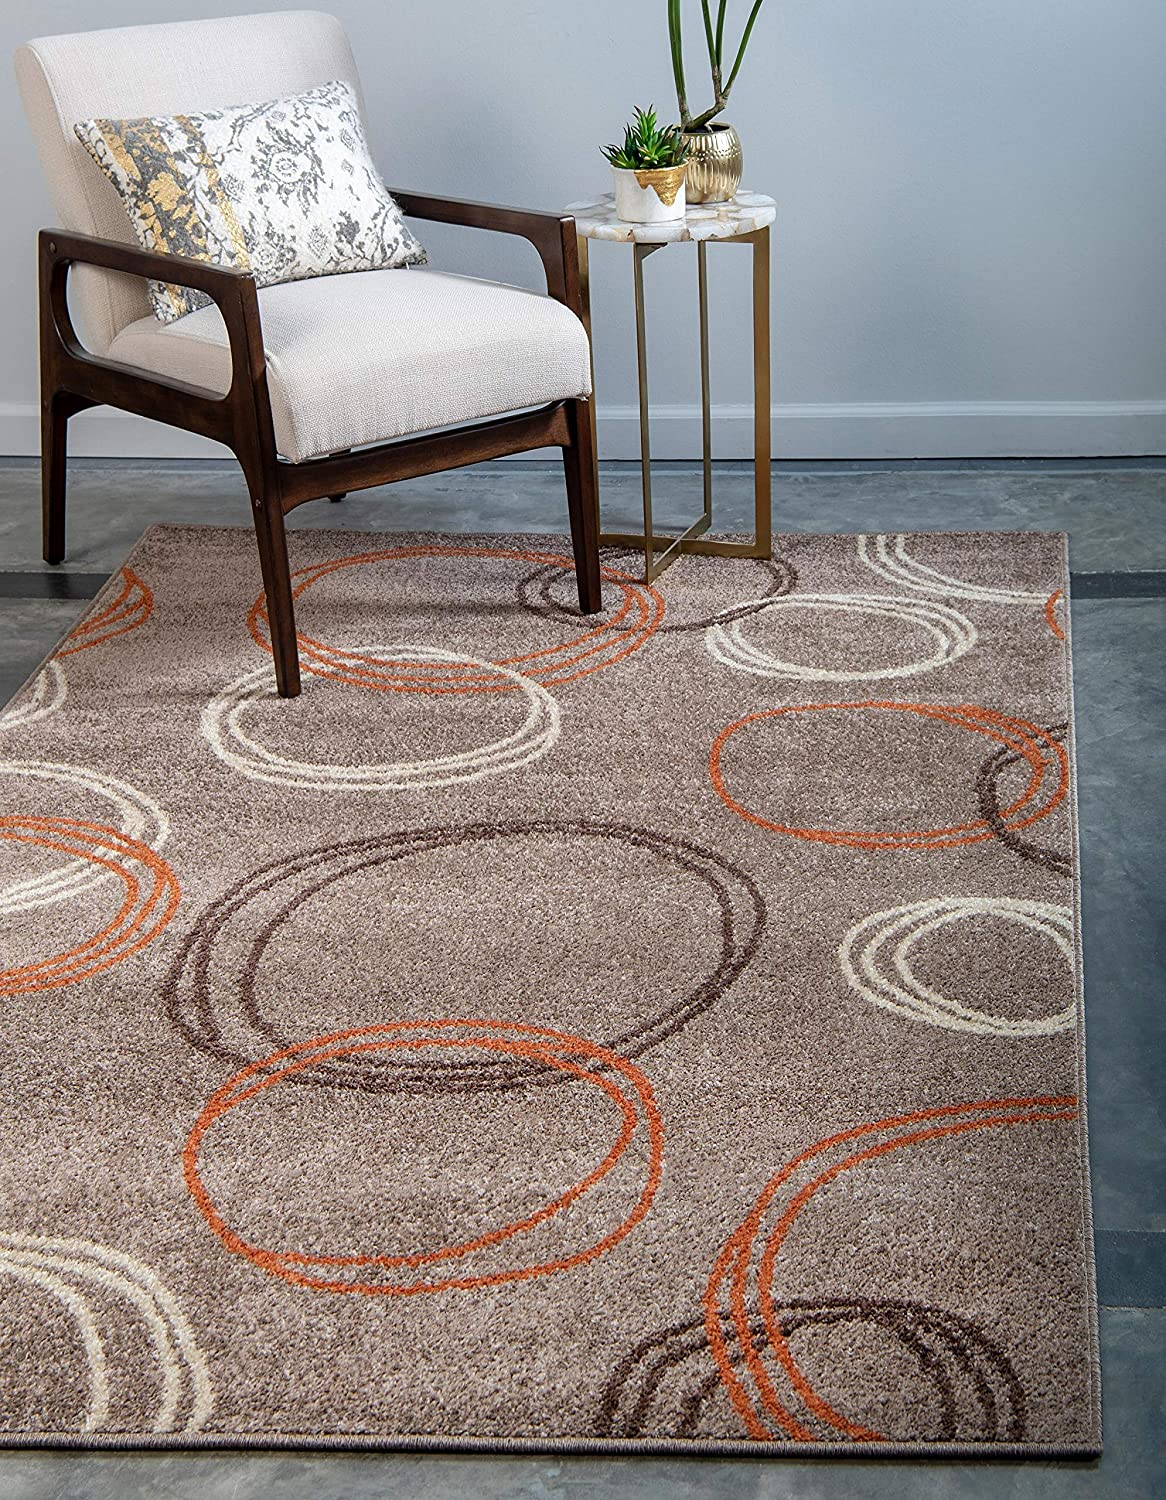 Unique Loom Autumn Collection Circles Casual Warm Toned Light Brown Area Rug 9 0 X 12 0 Furniture Decor